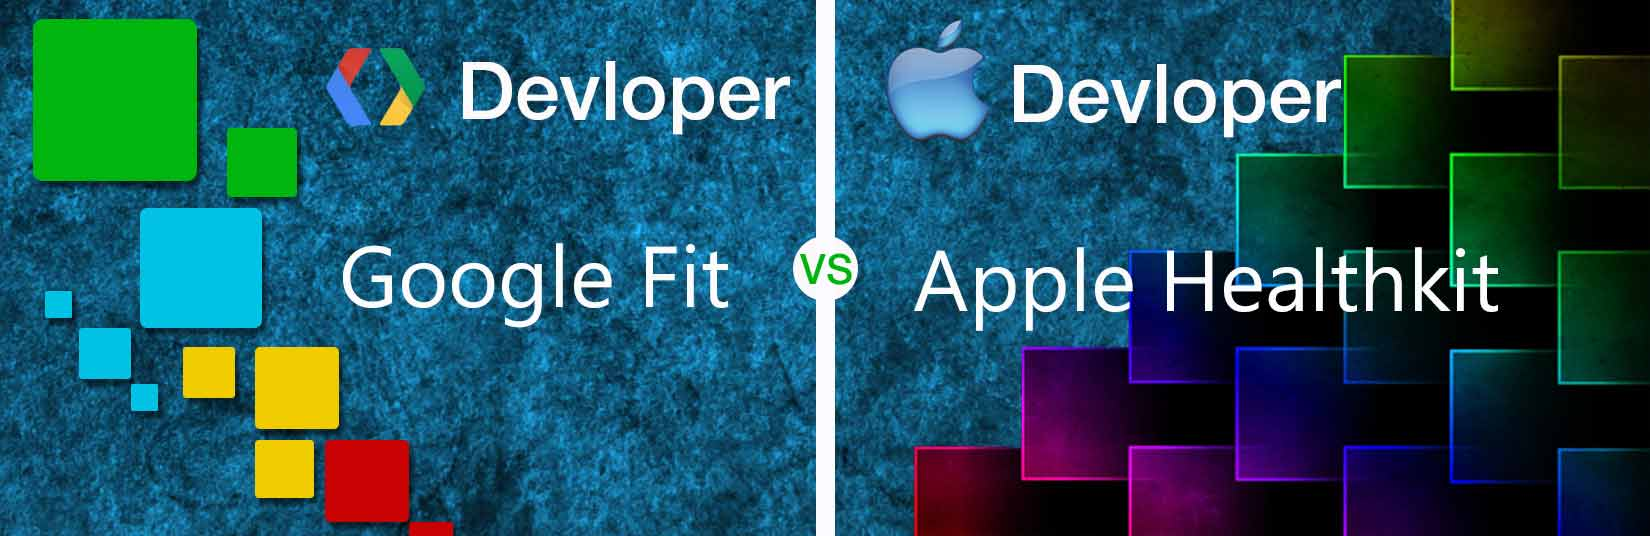 Google Fit Platform vs Apple Healthkit For Apps